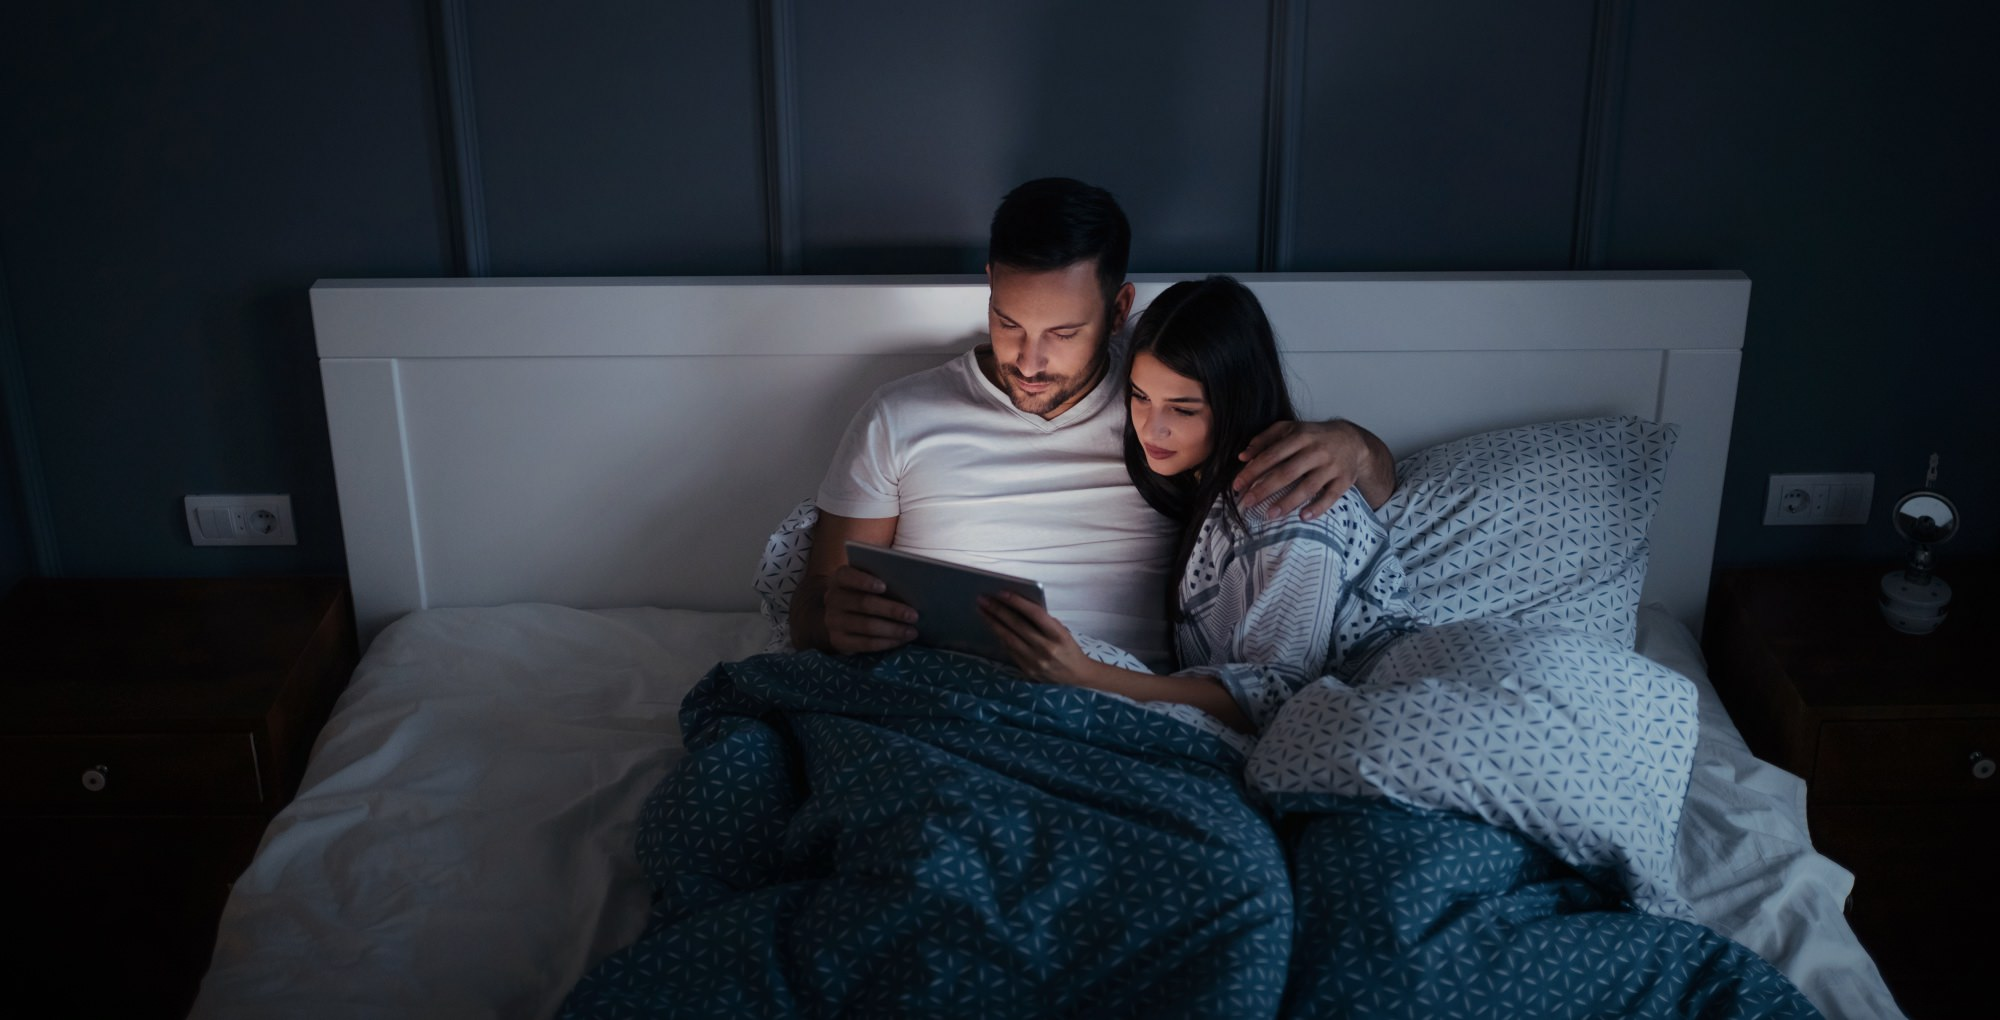 Does Porn with Your Partner Help Your Relationship in the Long-Run?